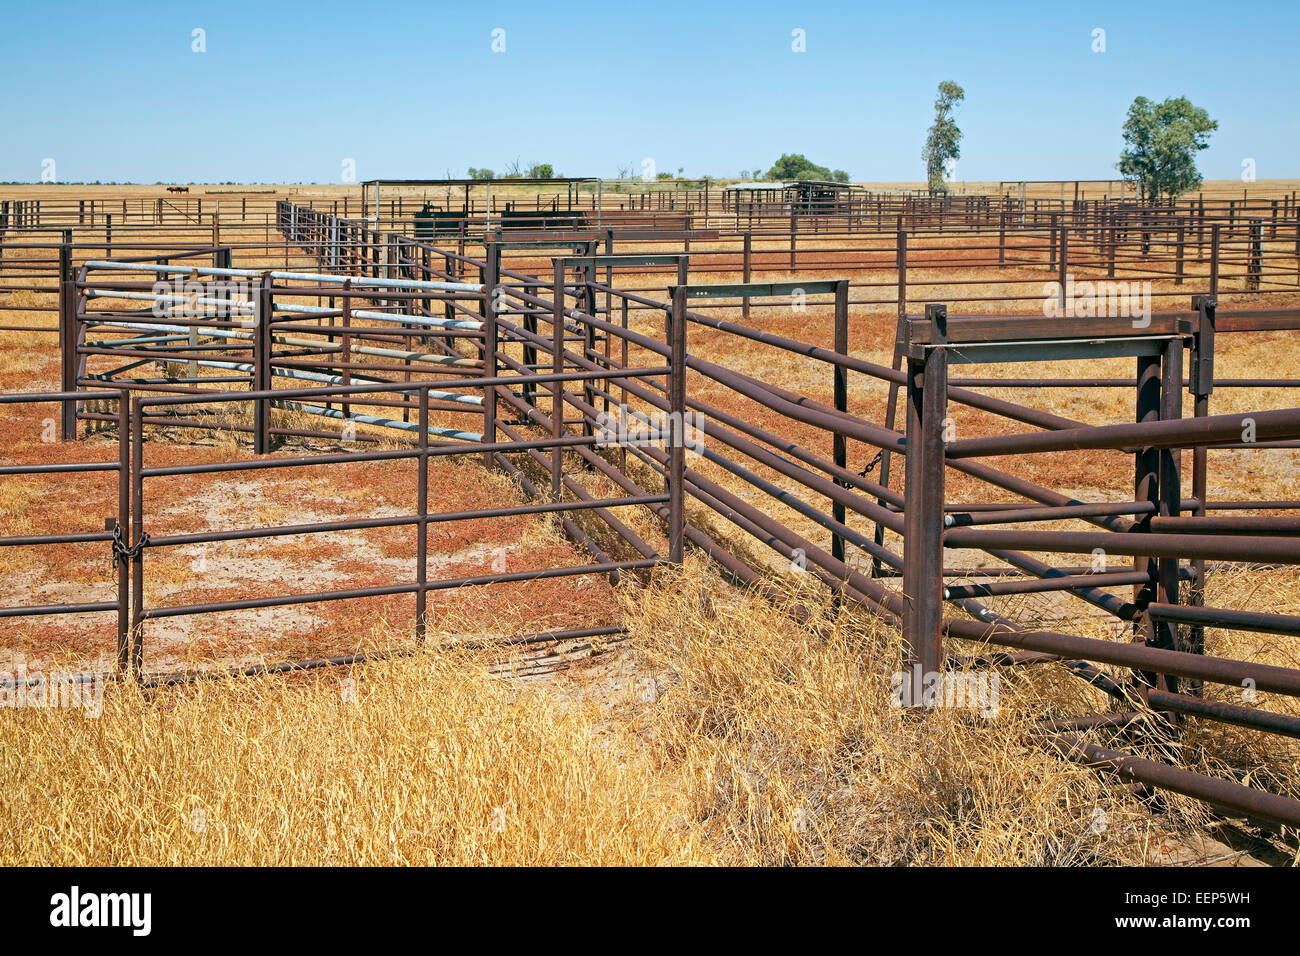 Metal gates of pen / corral at cattle station in the Australian outback, Northern Territory, Australia - Stock Image